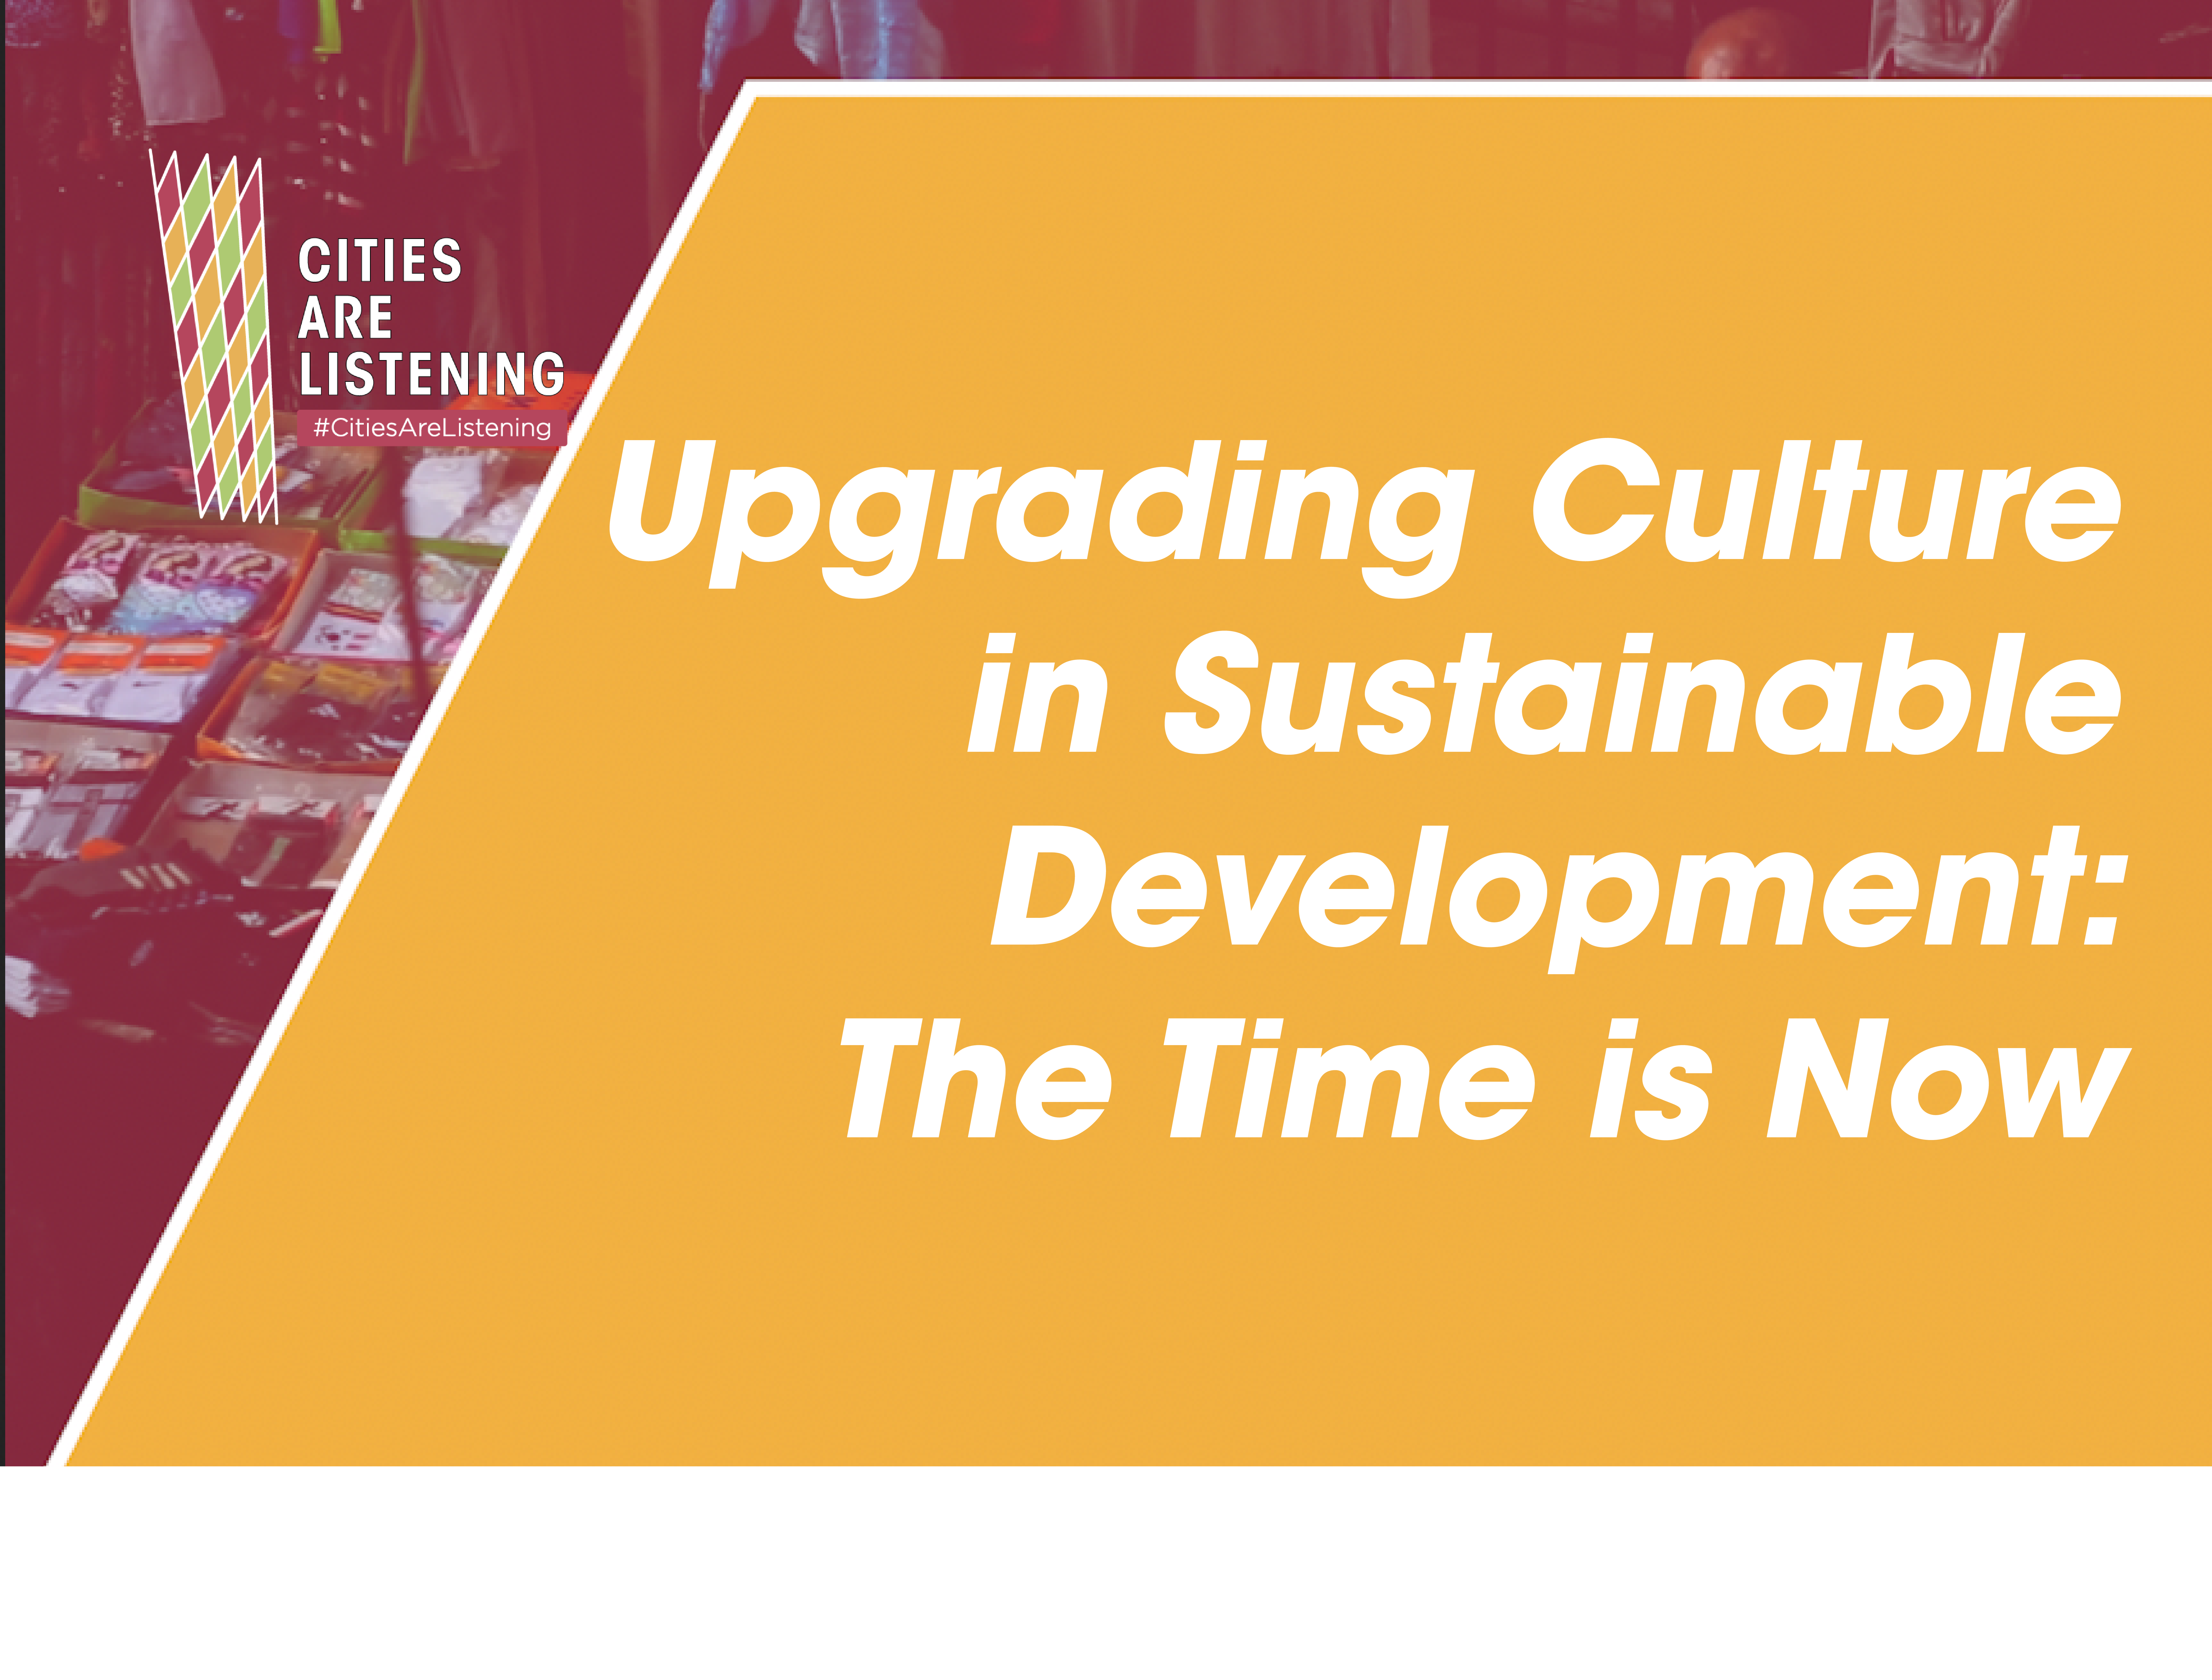 The time has come for culture to have a real place at the table of decision-making on the Future of Humanity